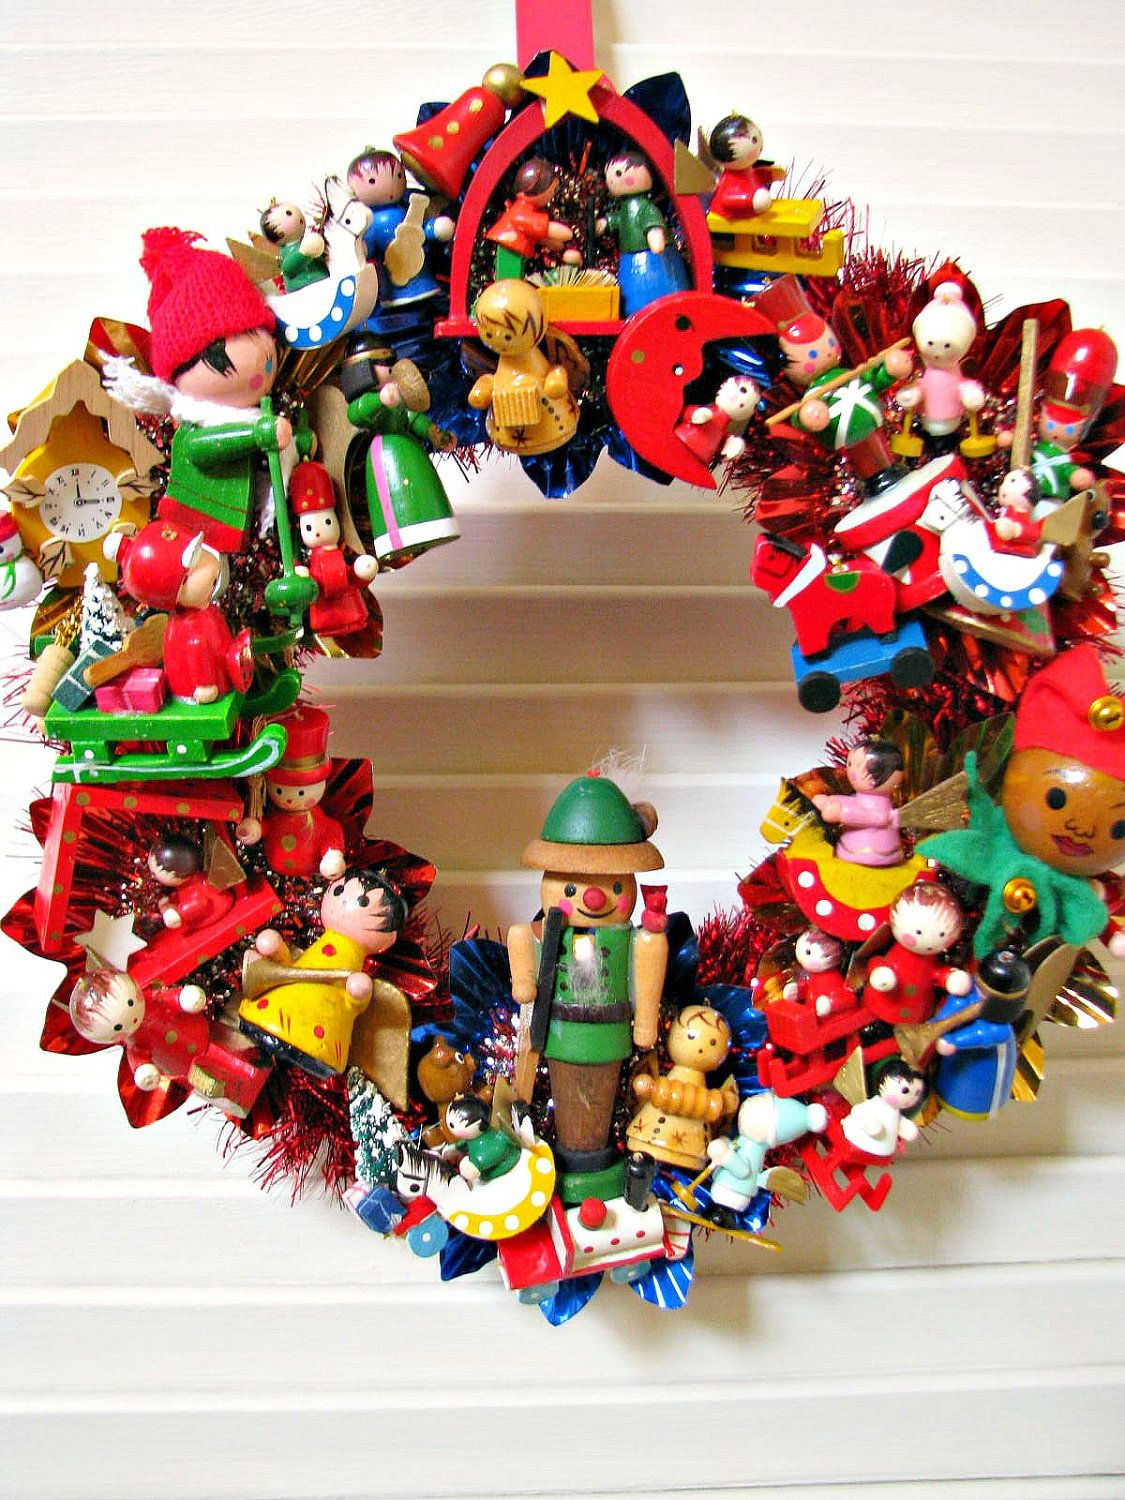 Toyland Vintage Christmas Wreath With Lots Of Vintage Wooden Etsy Christmas Wreaths Retro Christmas Decorations Classroom Christmas Decorations